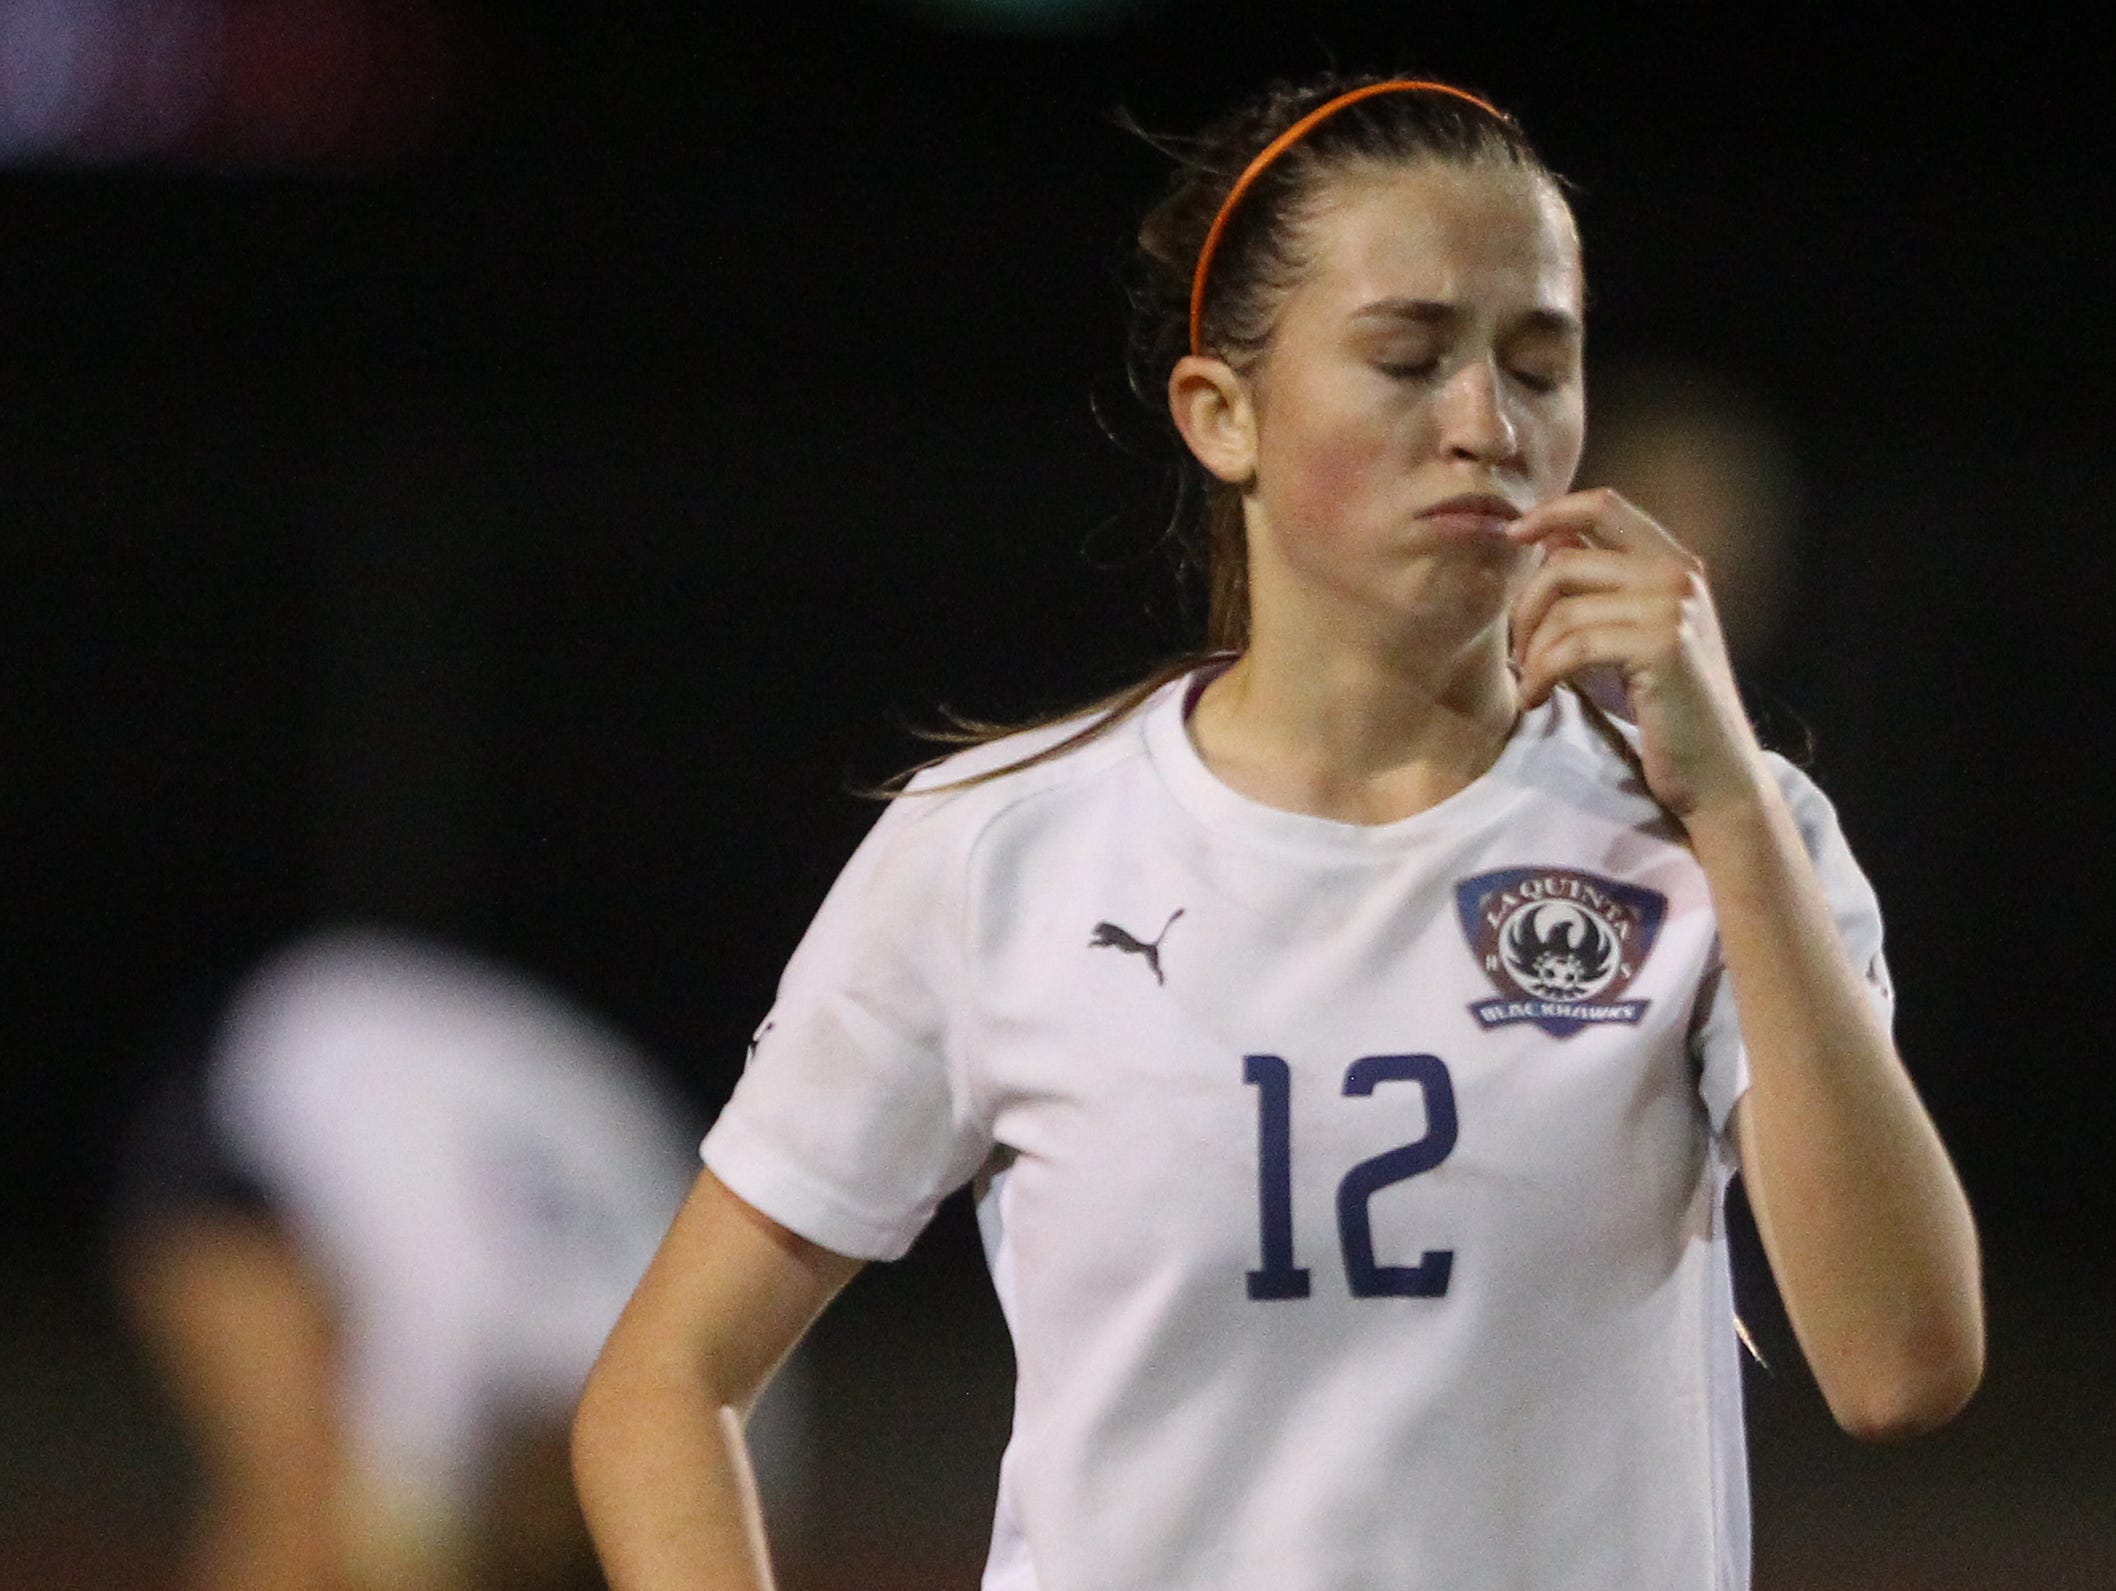 Lauren Costello of La Quinta High School girls' soccer team is dejected after her team misses a shot on goal against Paloma Valley High School during their second round CIF game at La Quinta on February 21, 2017. La Quinta lost 0-1.